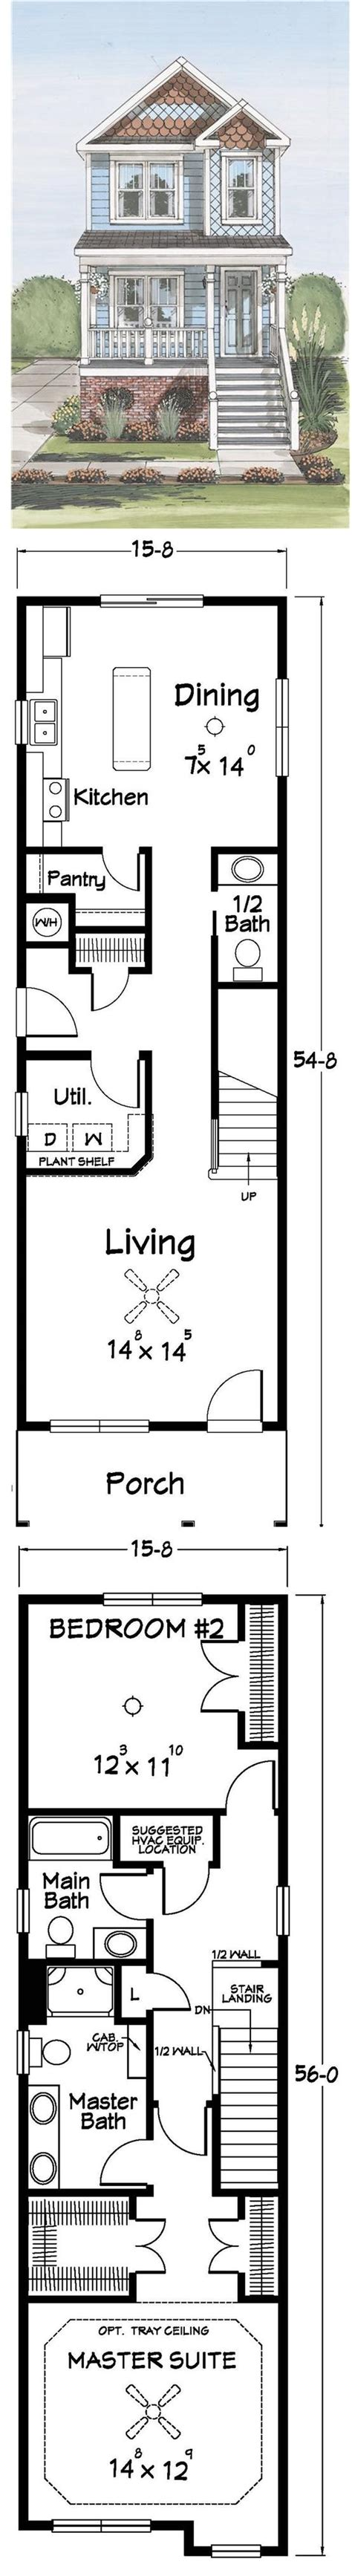 house plans for small narrow lots this charming narrow lot friendly garden city plan provied large house square